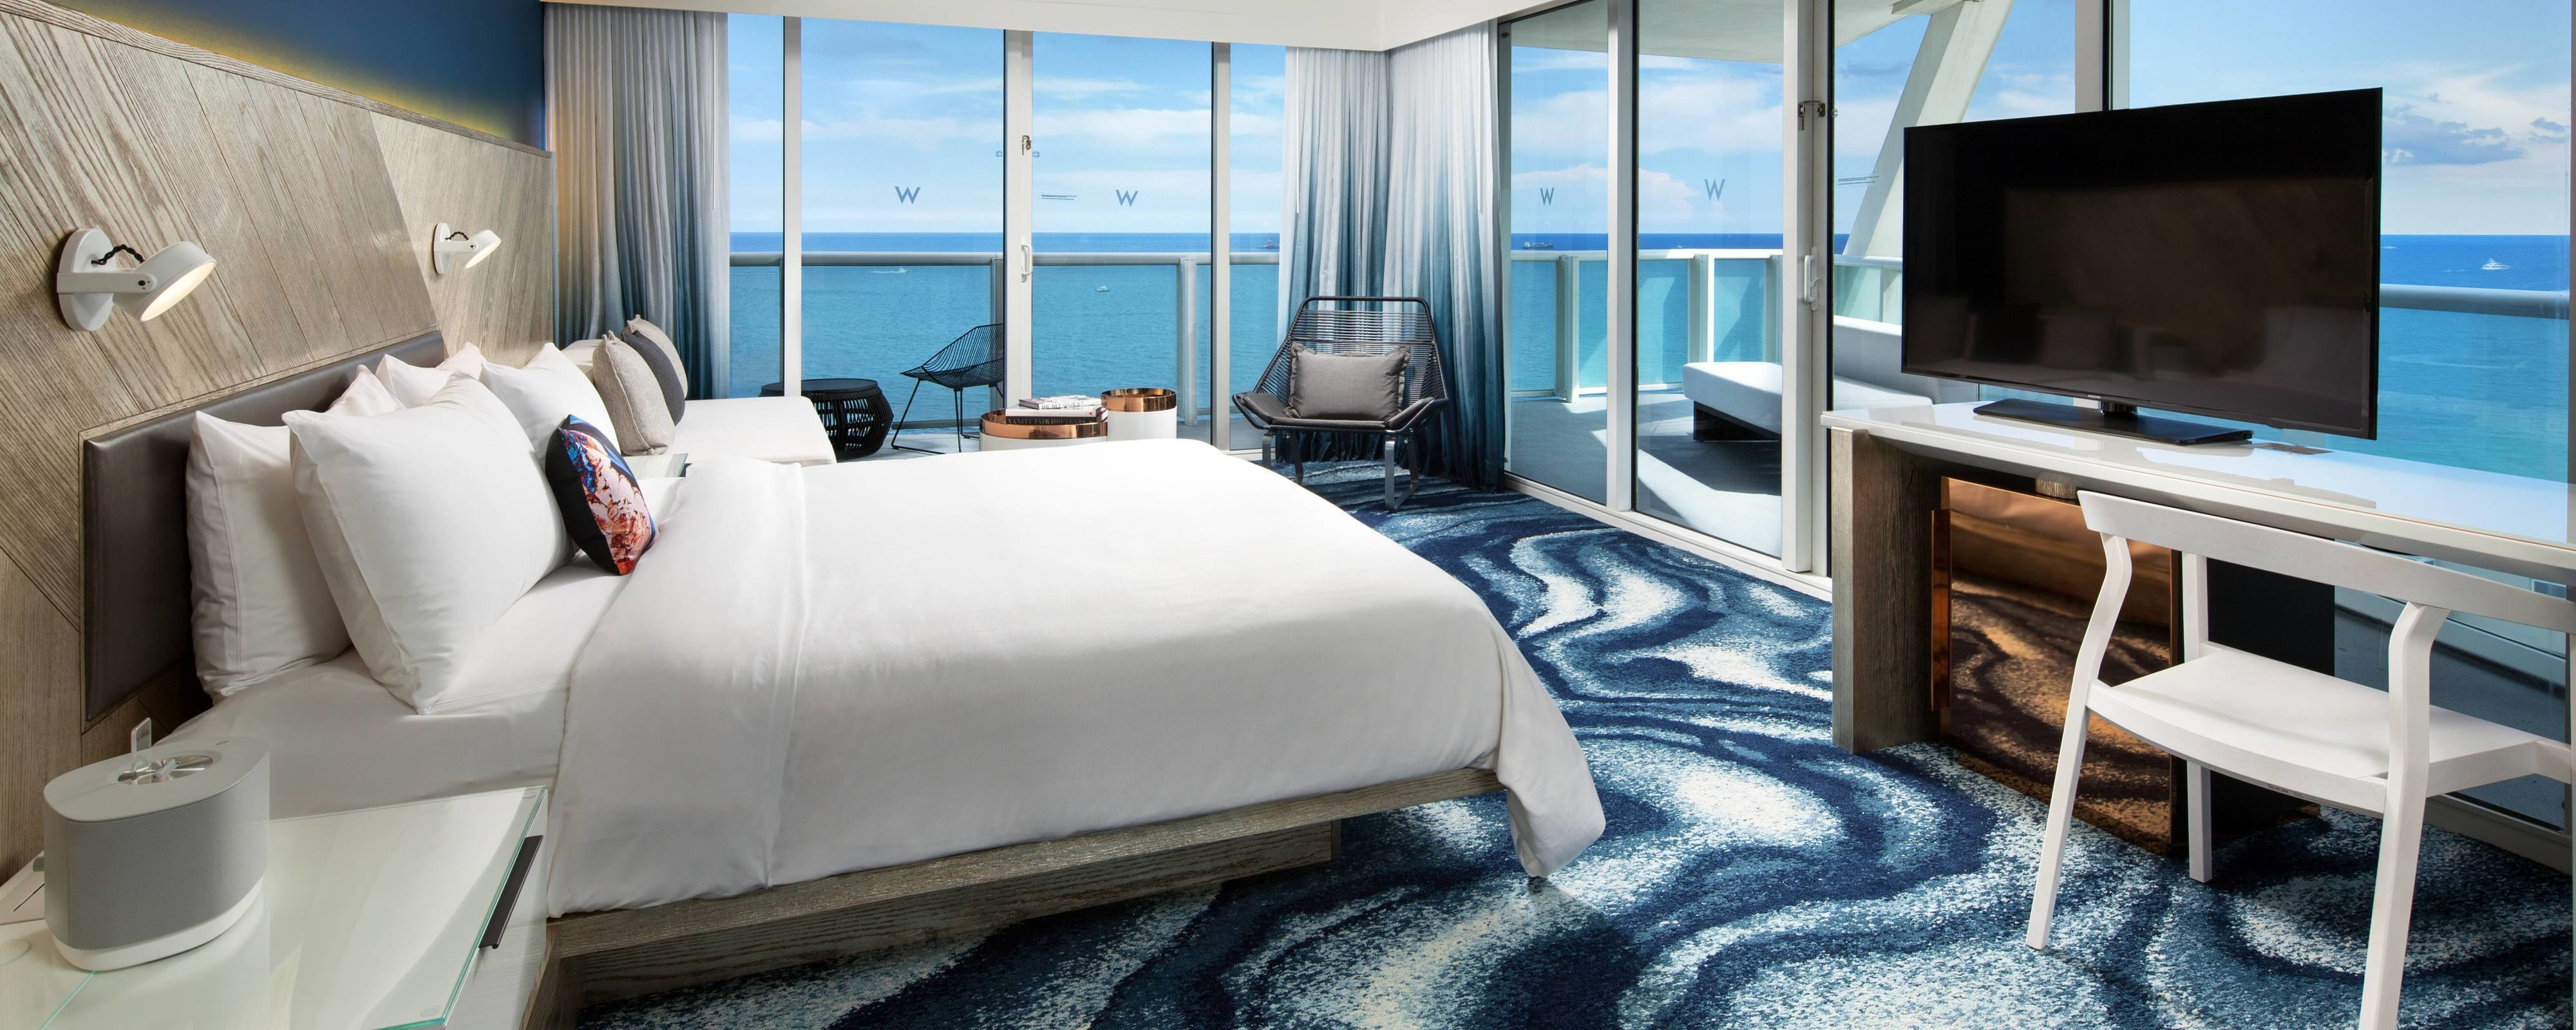 Best Two Bedroom Suites In Fort Lauderdale Fl Www Resnooze Com With Pictures